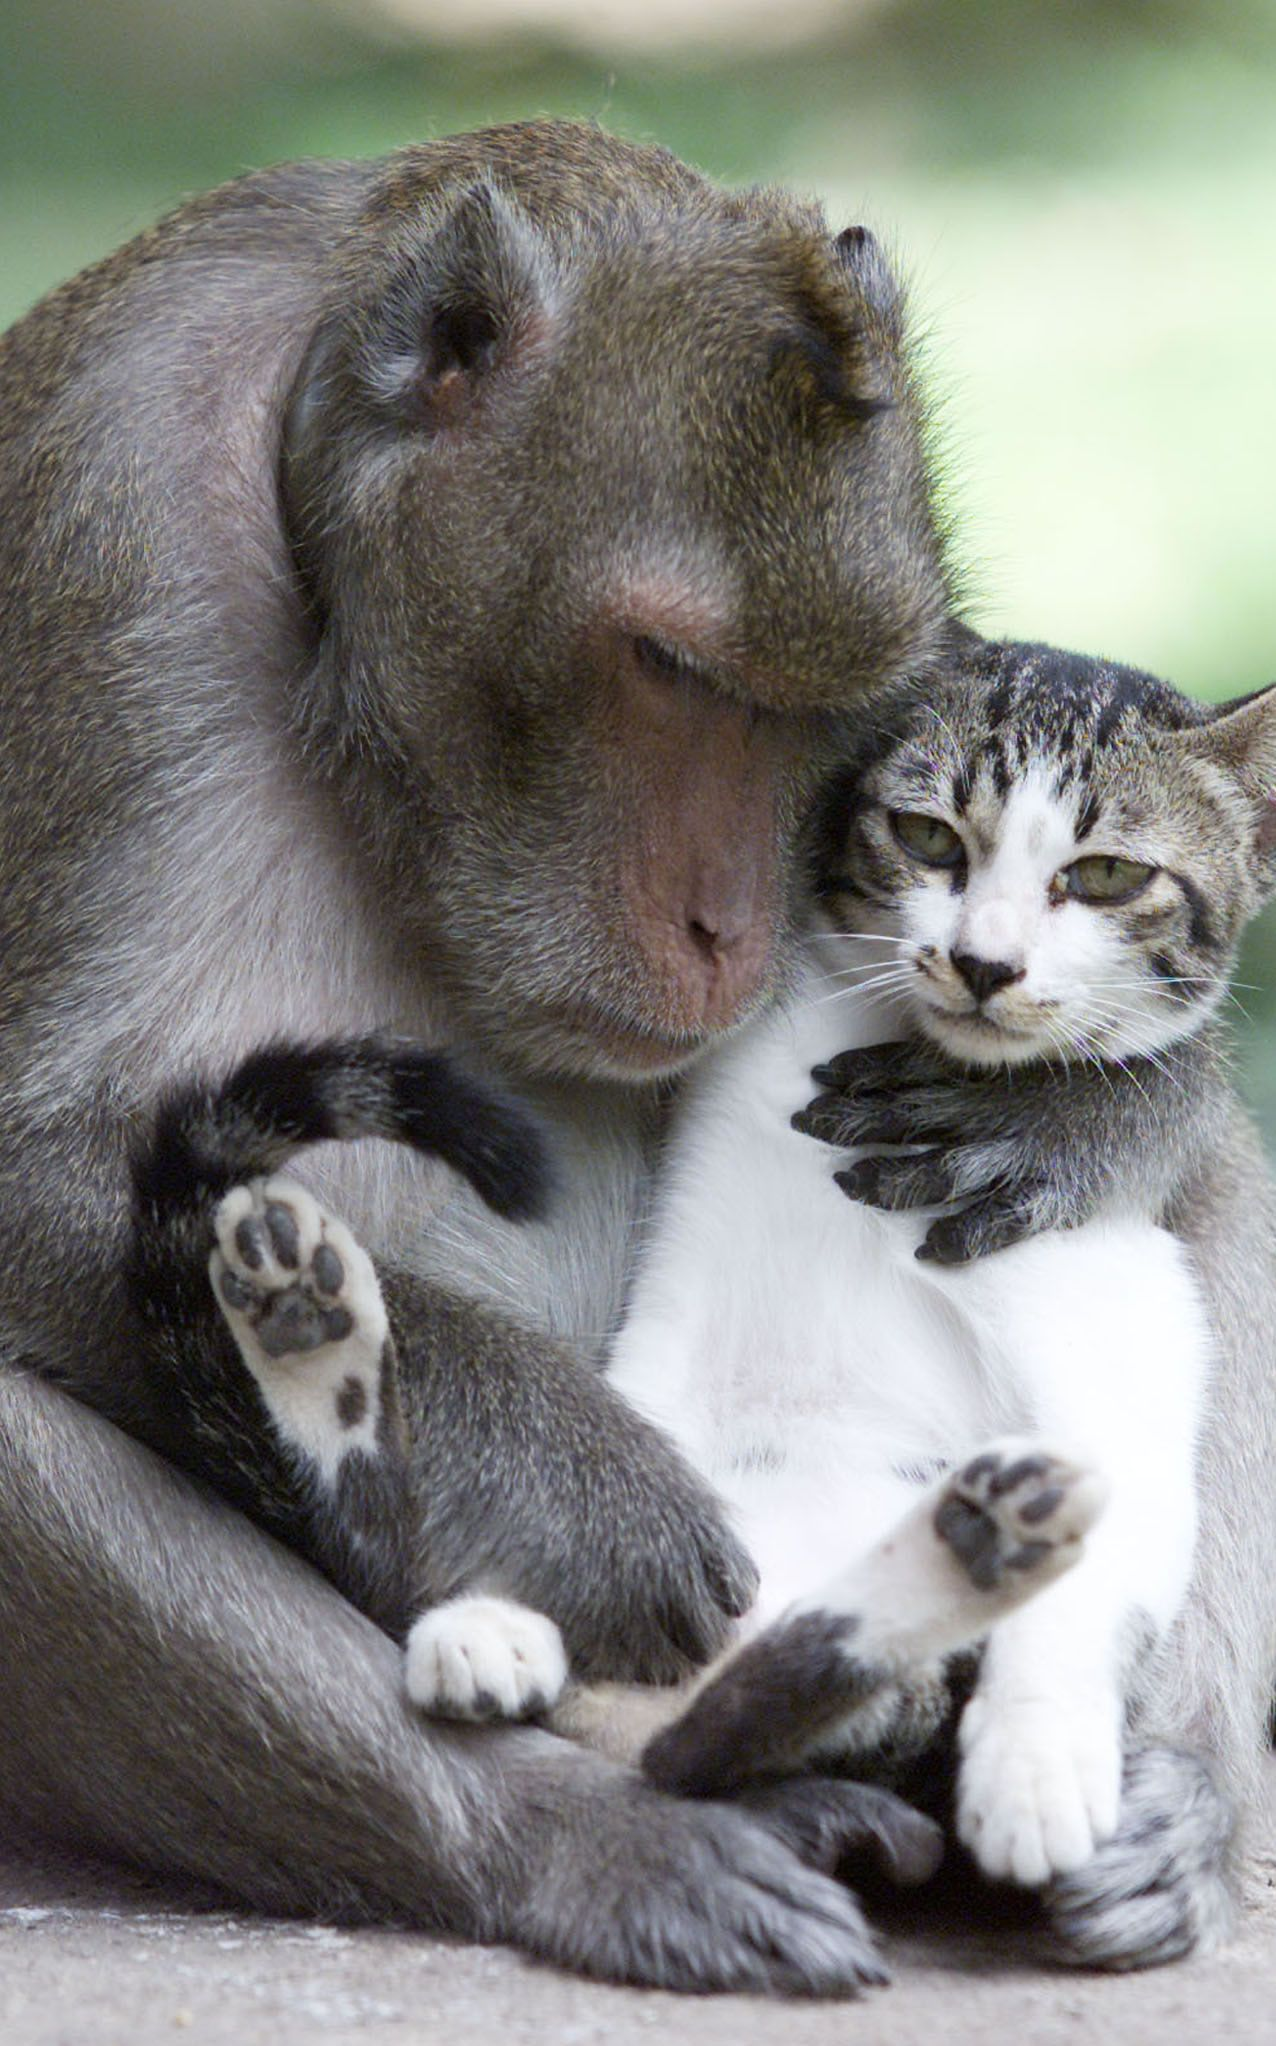 monkey hugs cat